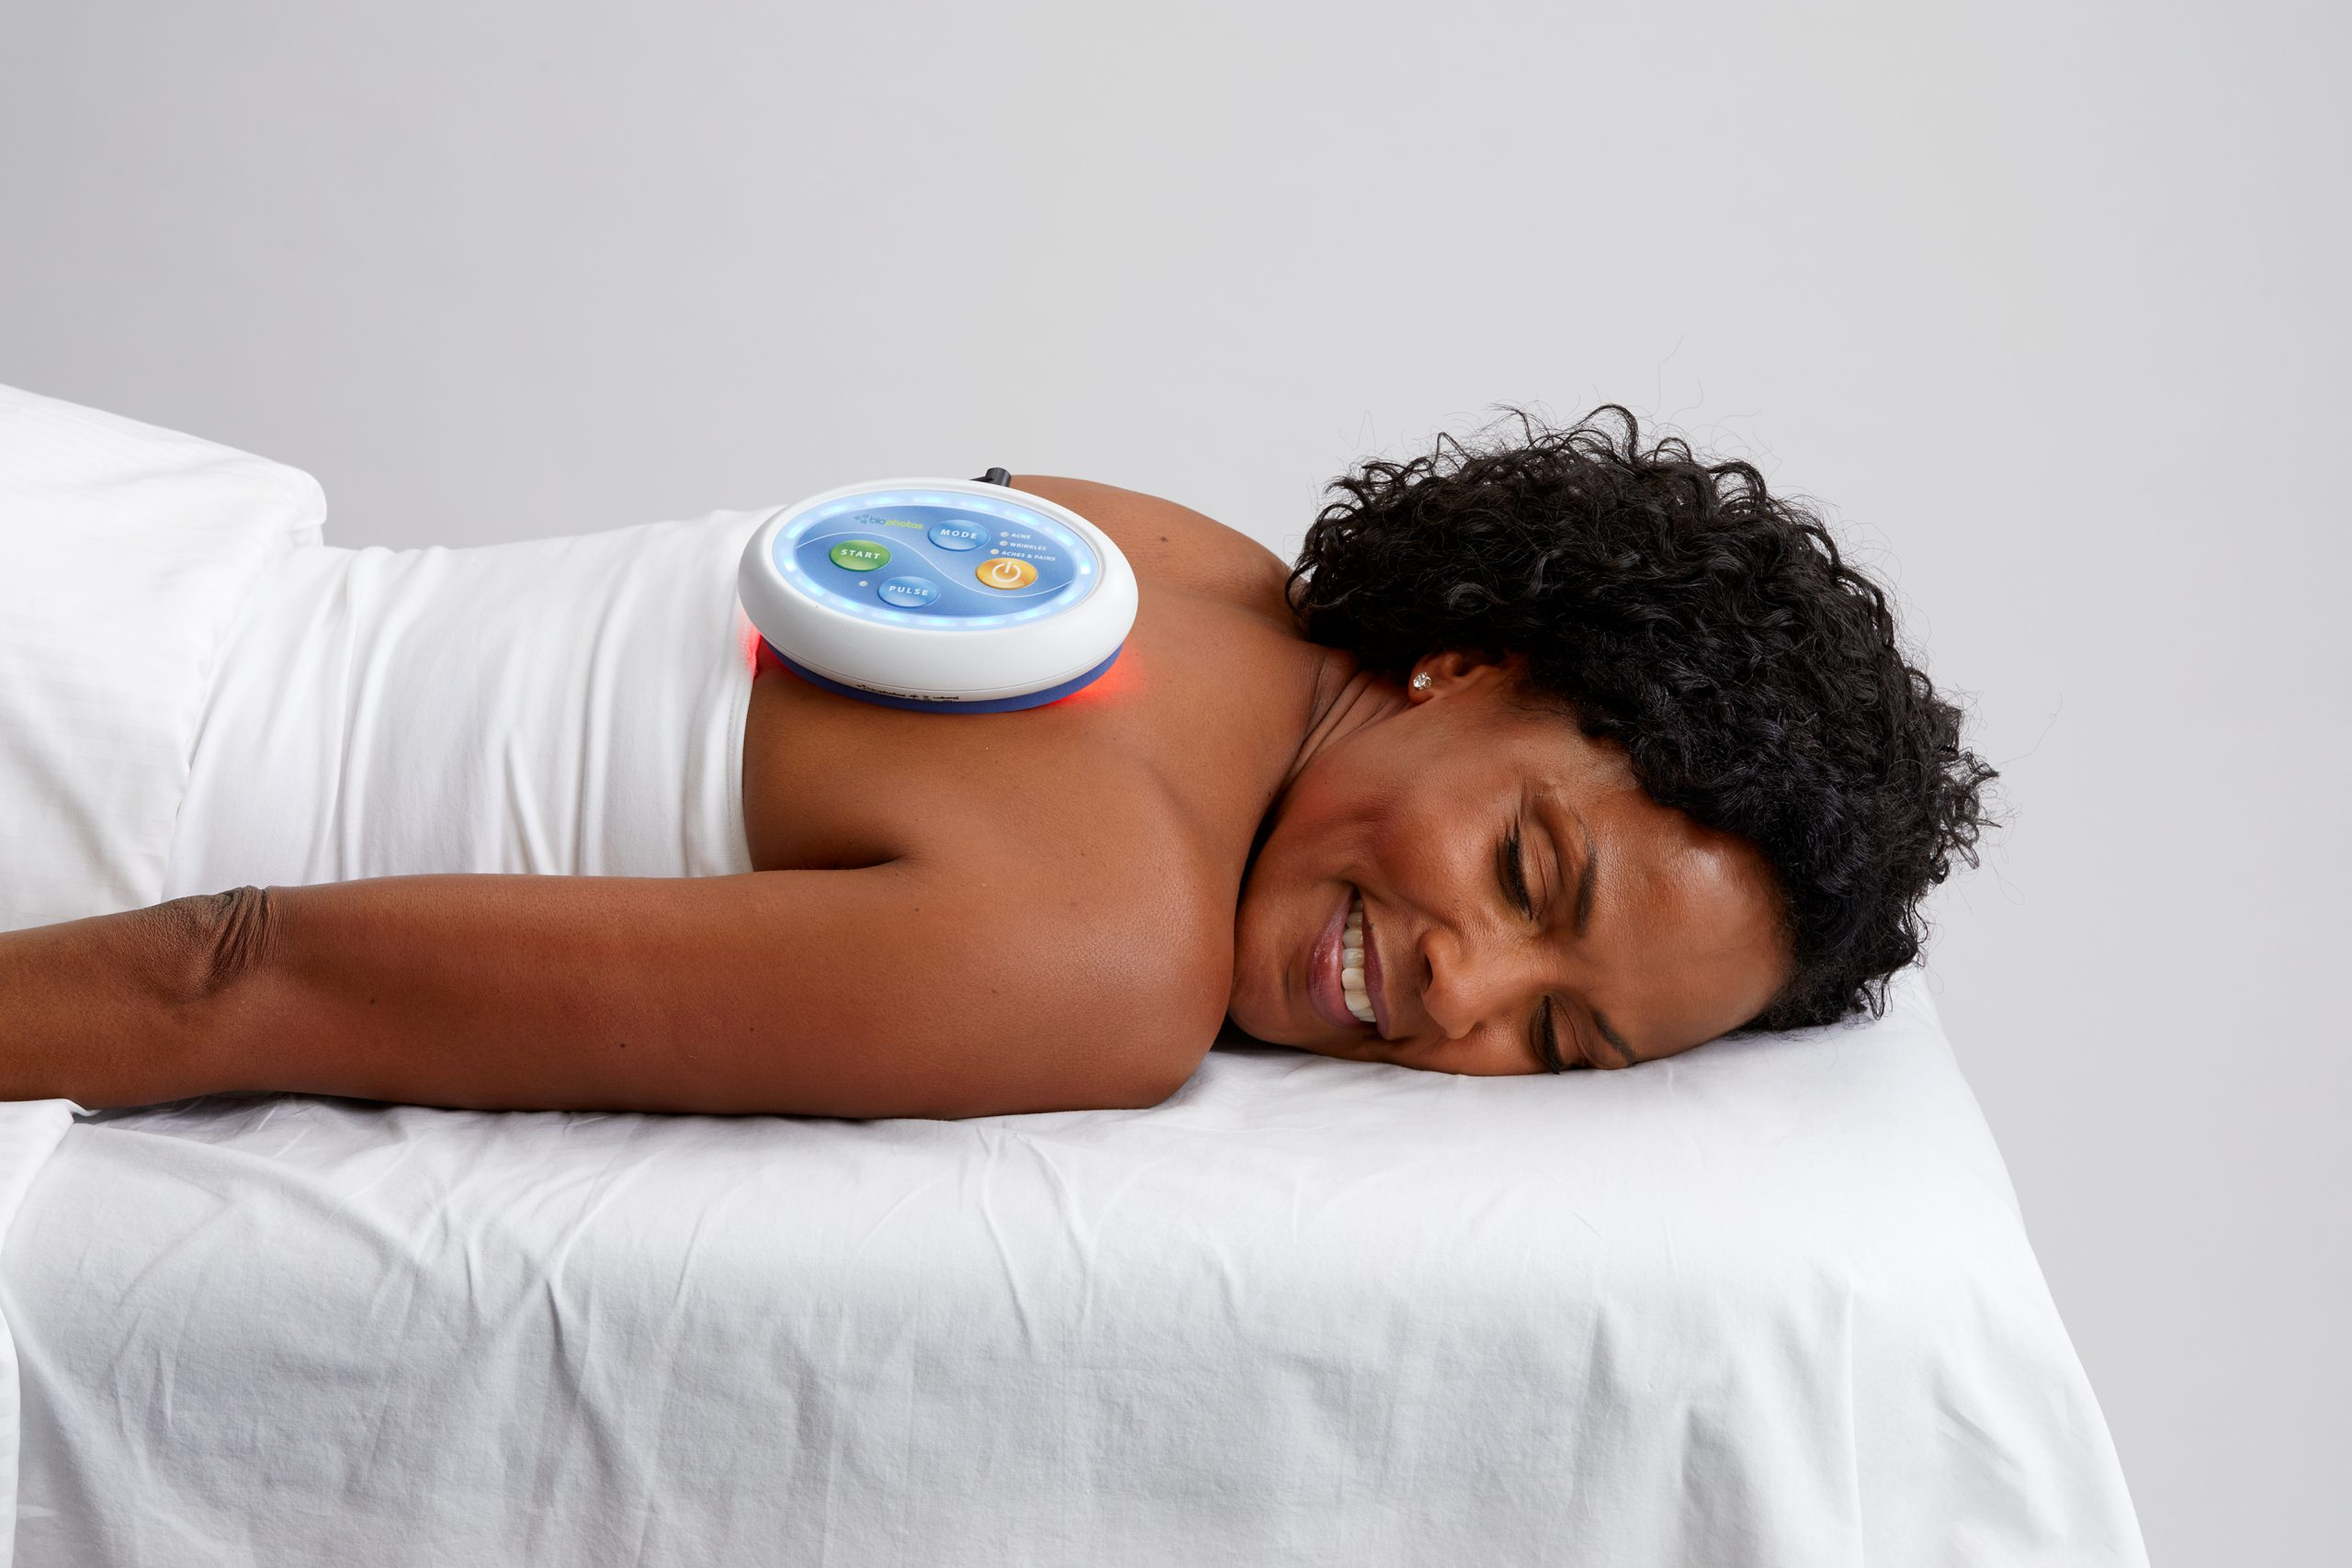 A woman laying on a table with a cellumaPhotobiomodulation Therapy device on her back